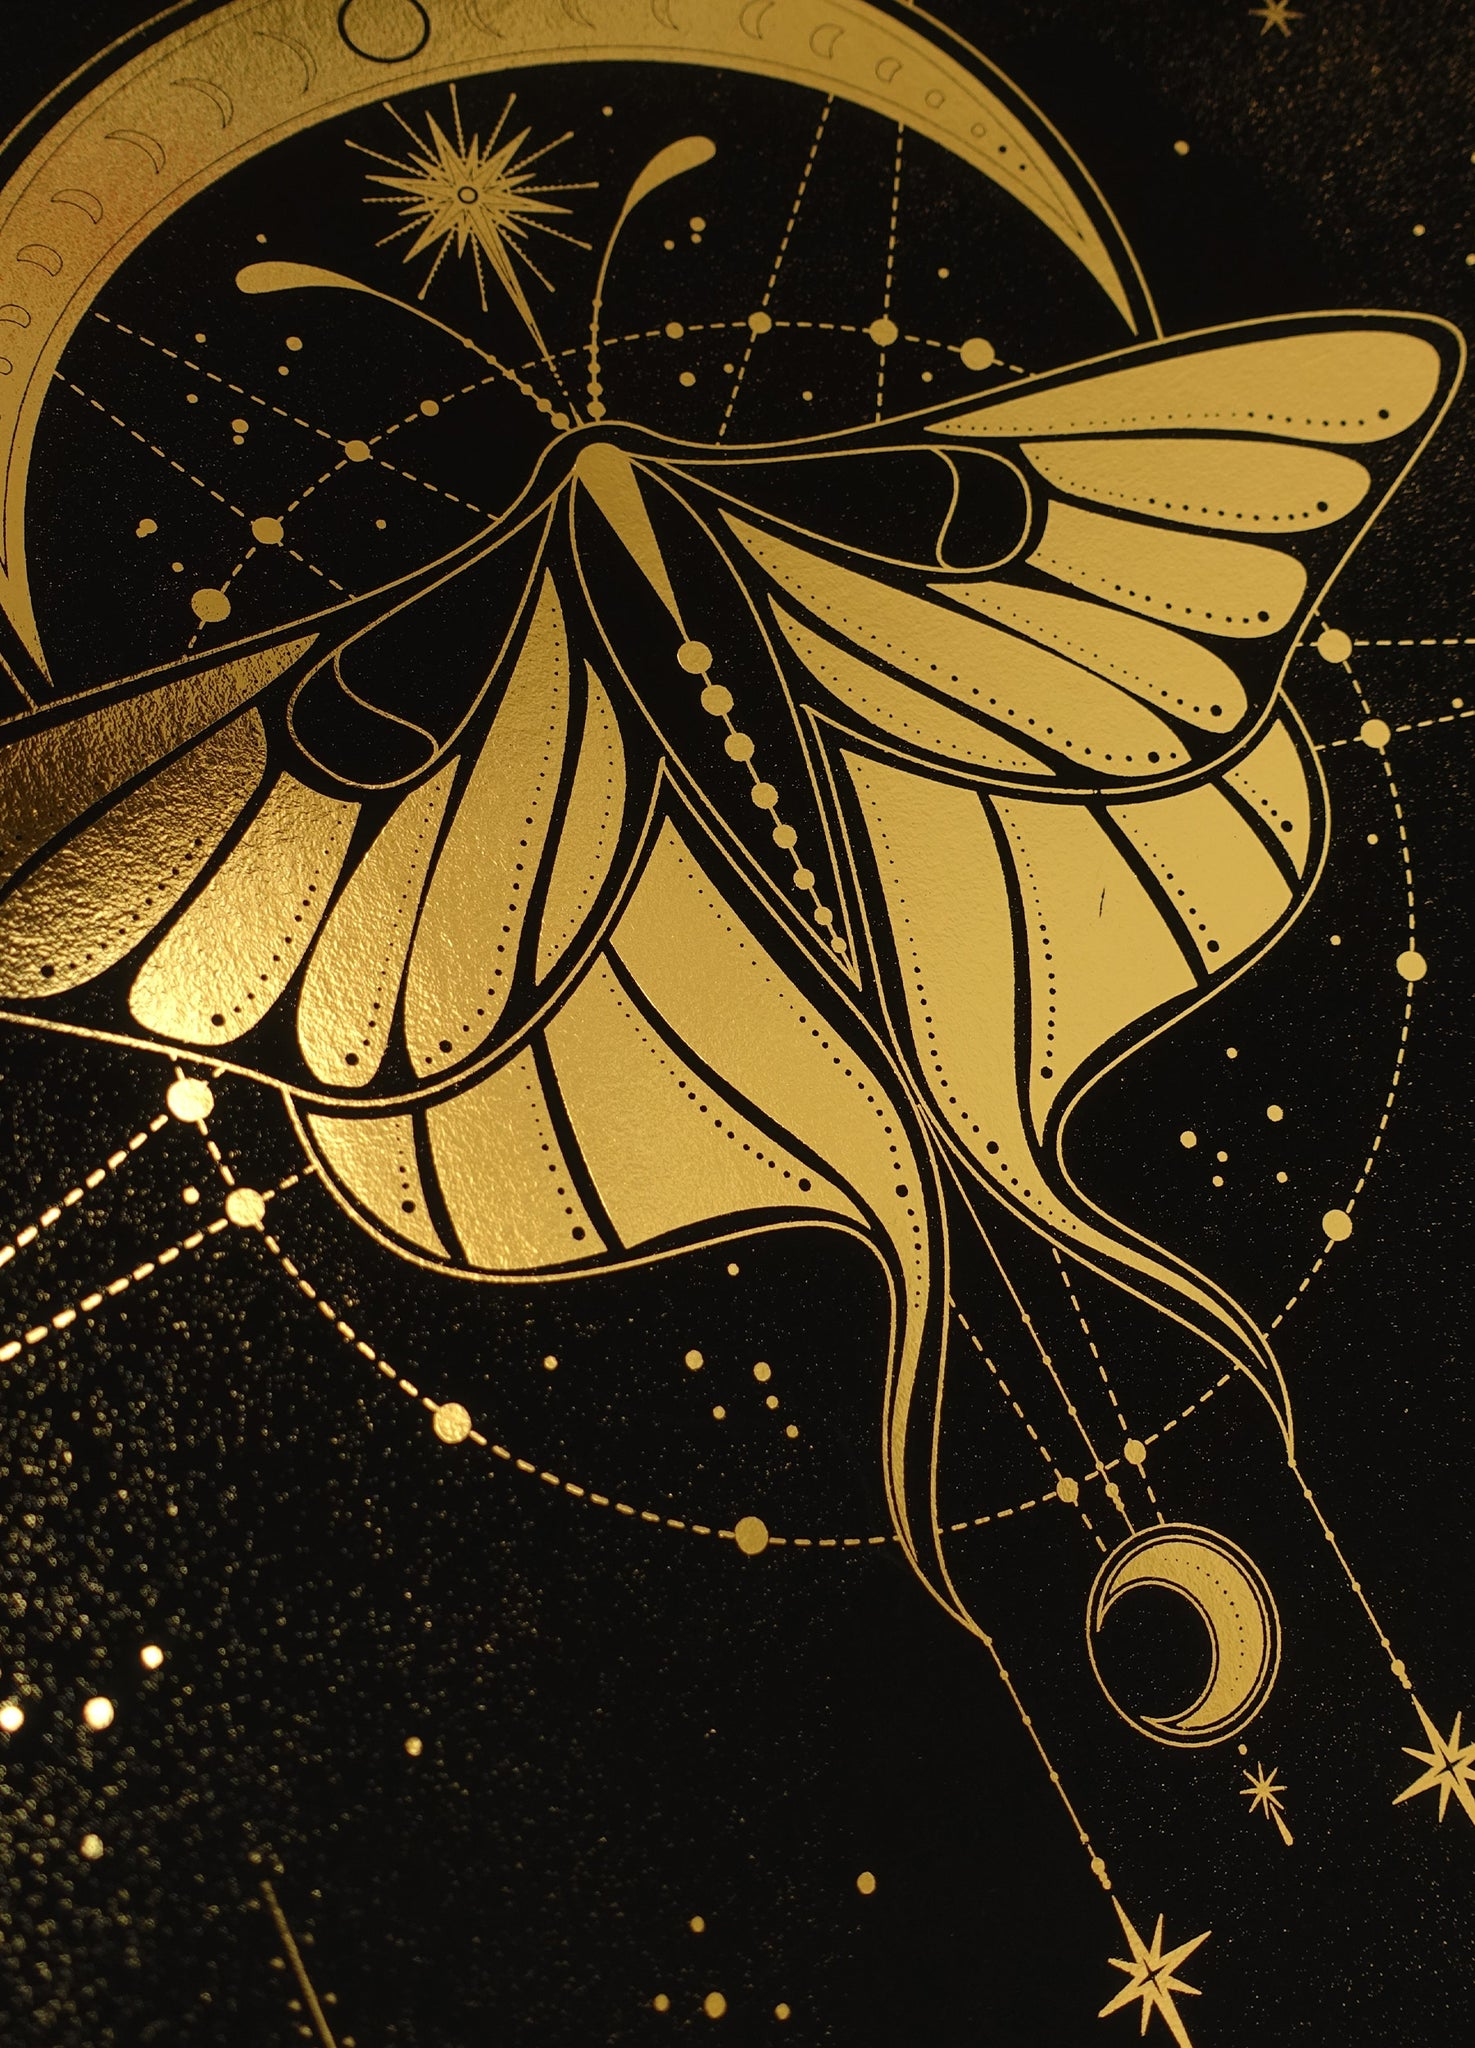 Cosmic Butterfly, gold foil and black paper with stars and moon by Cocorrina